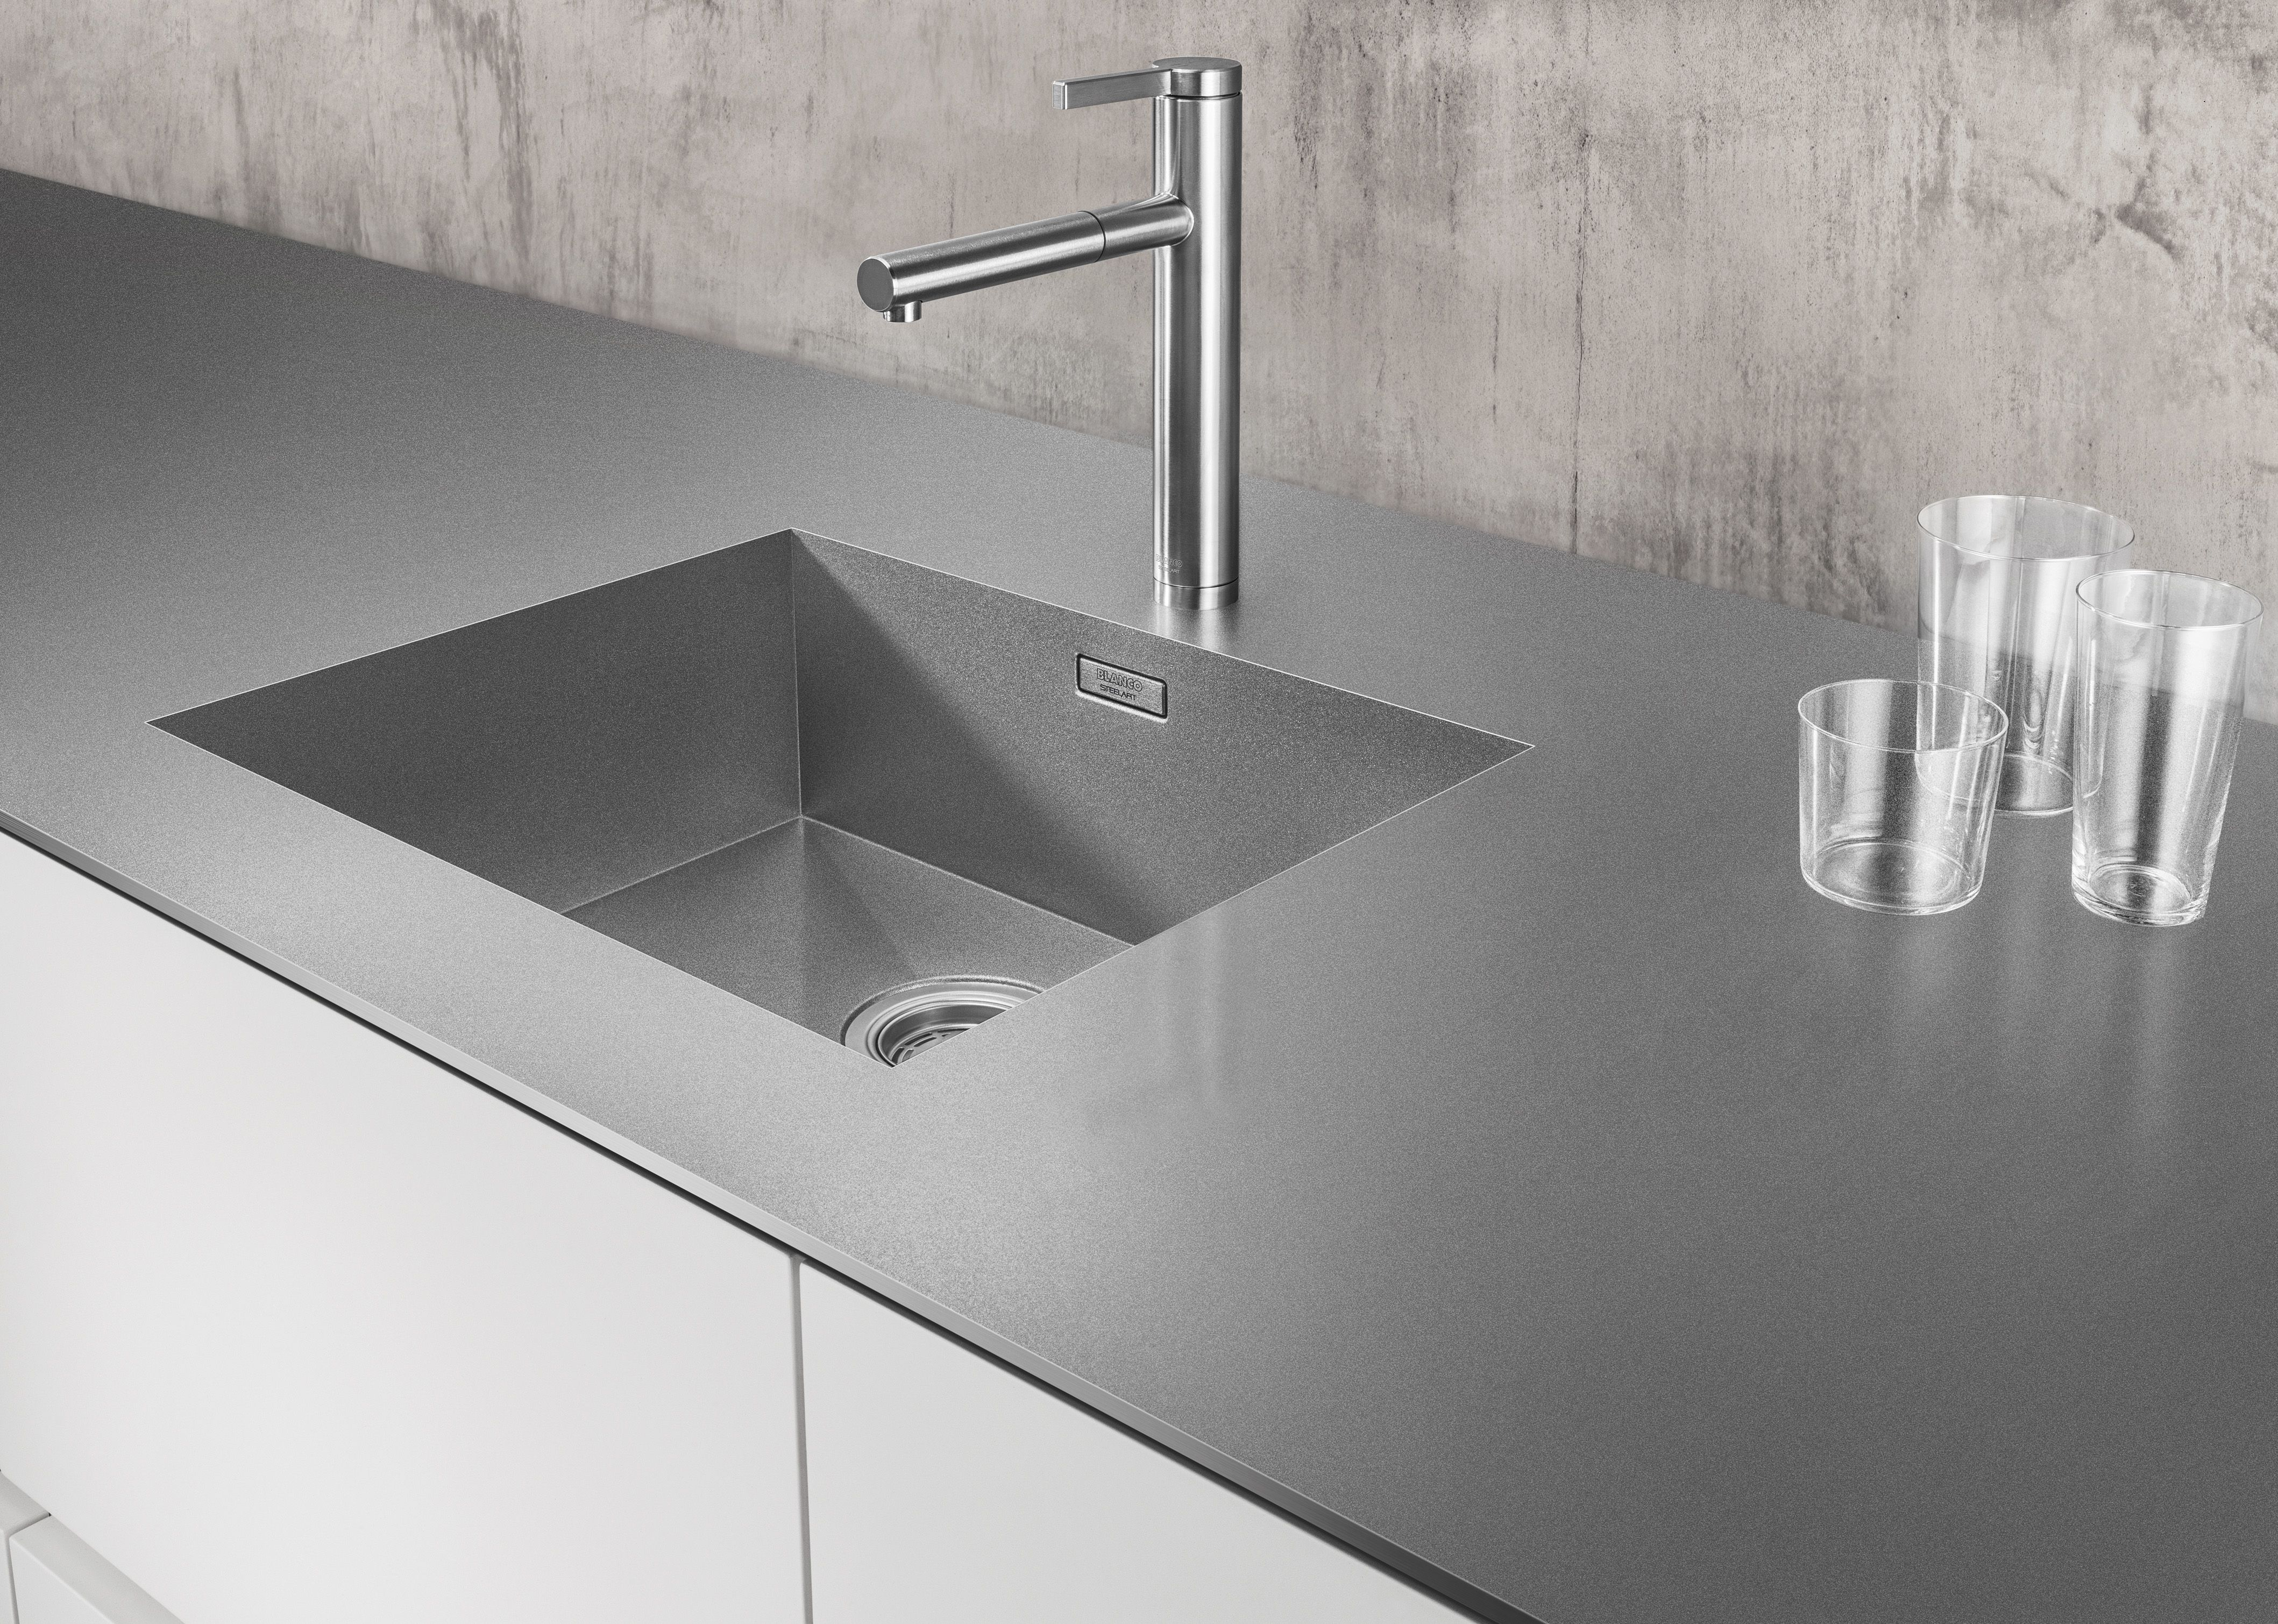 stainless steel benchtop thin edge - Google Search | Equipment ...